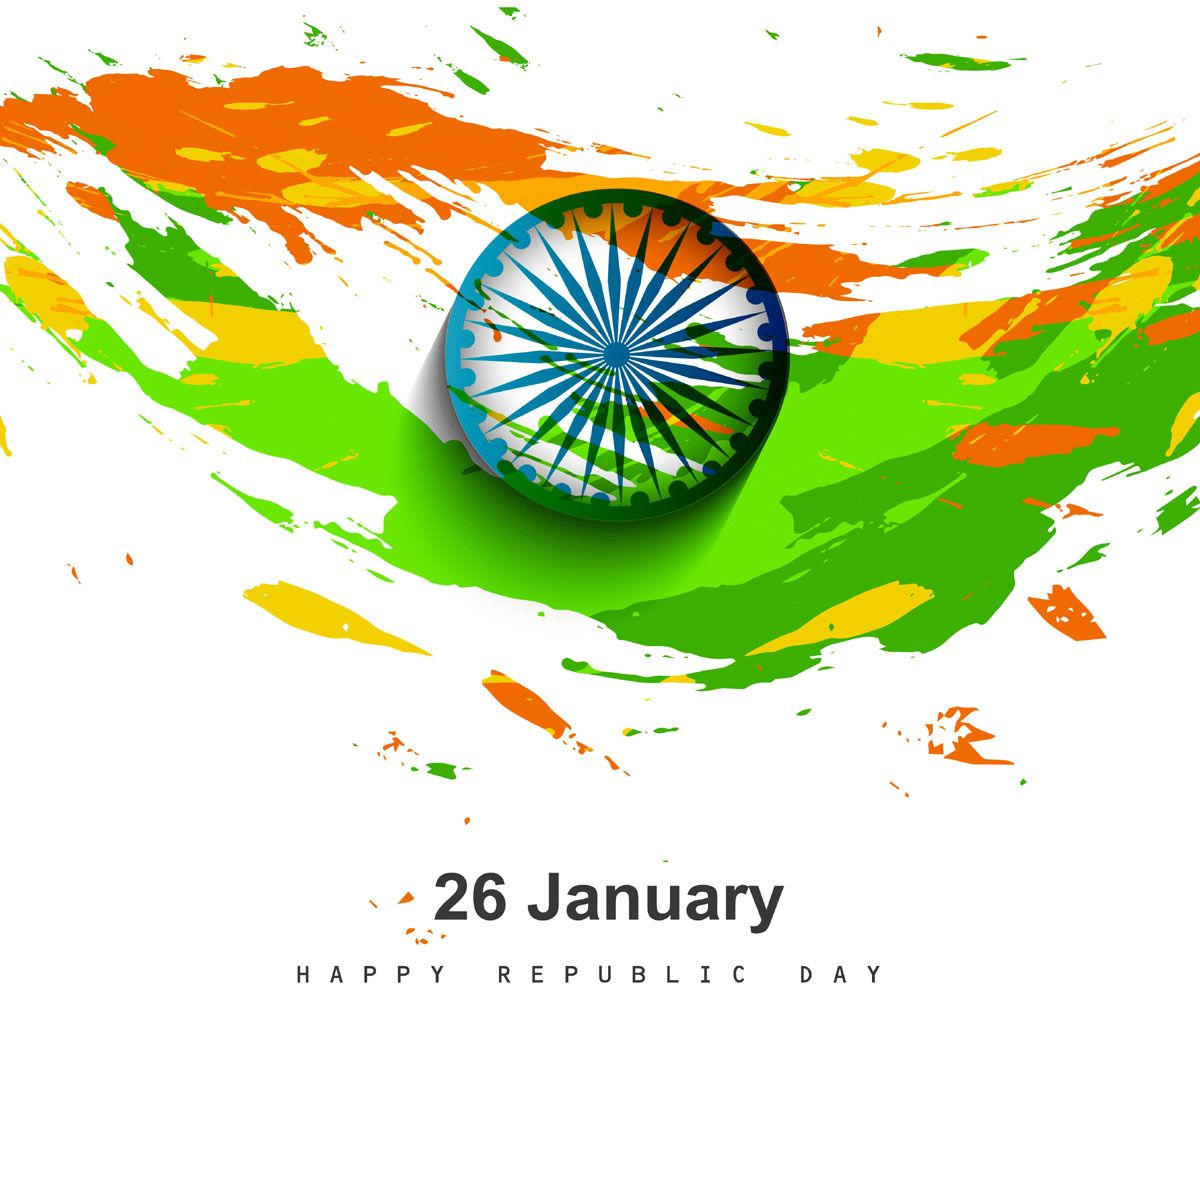 Happy Republic Day Wallpapers Republic Day India Happy Republic Day Wallpaper Republic Day Indian Hd wallpapers india happy republic day